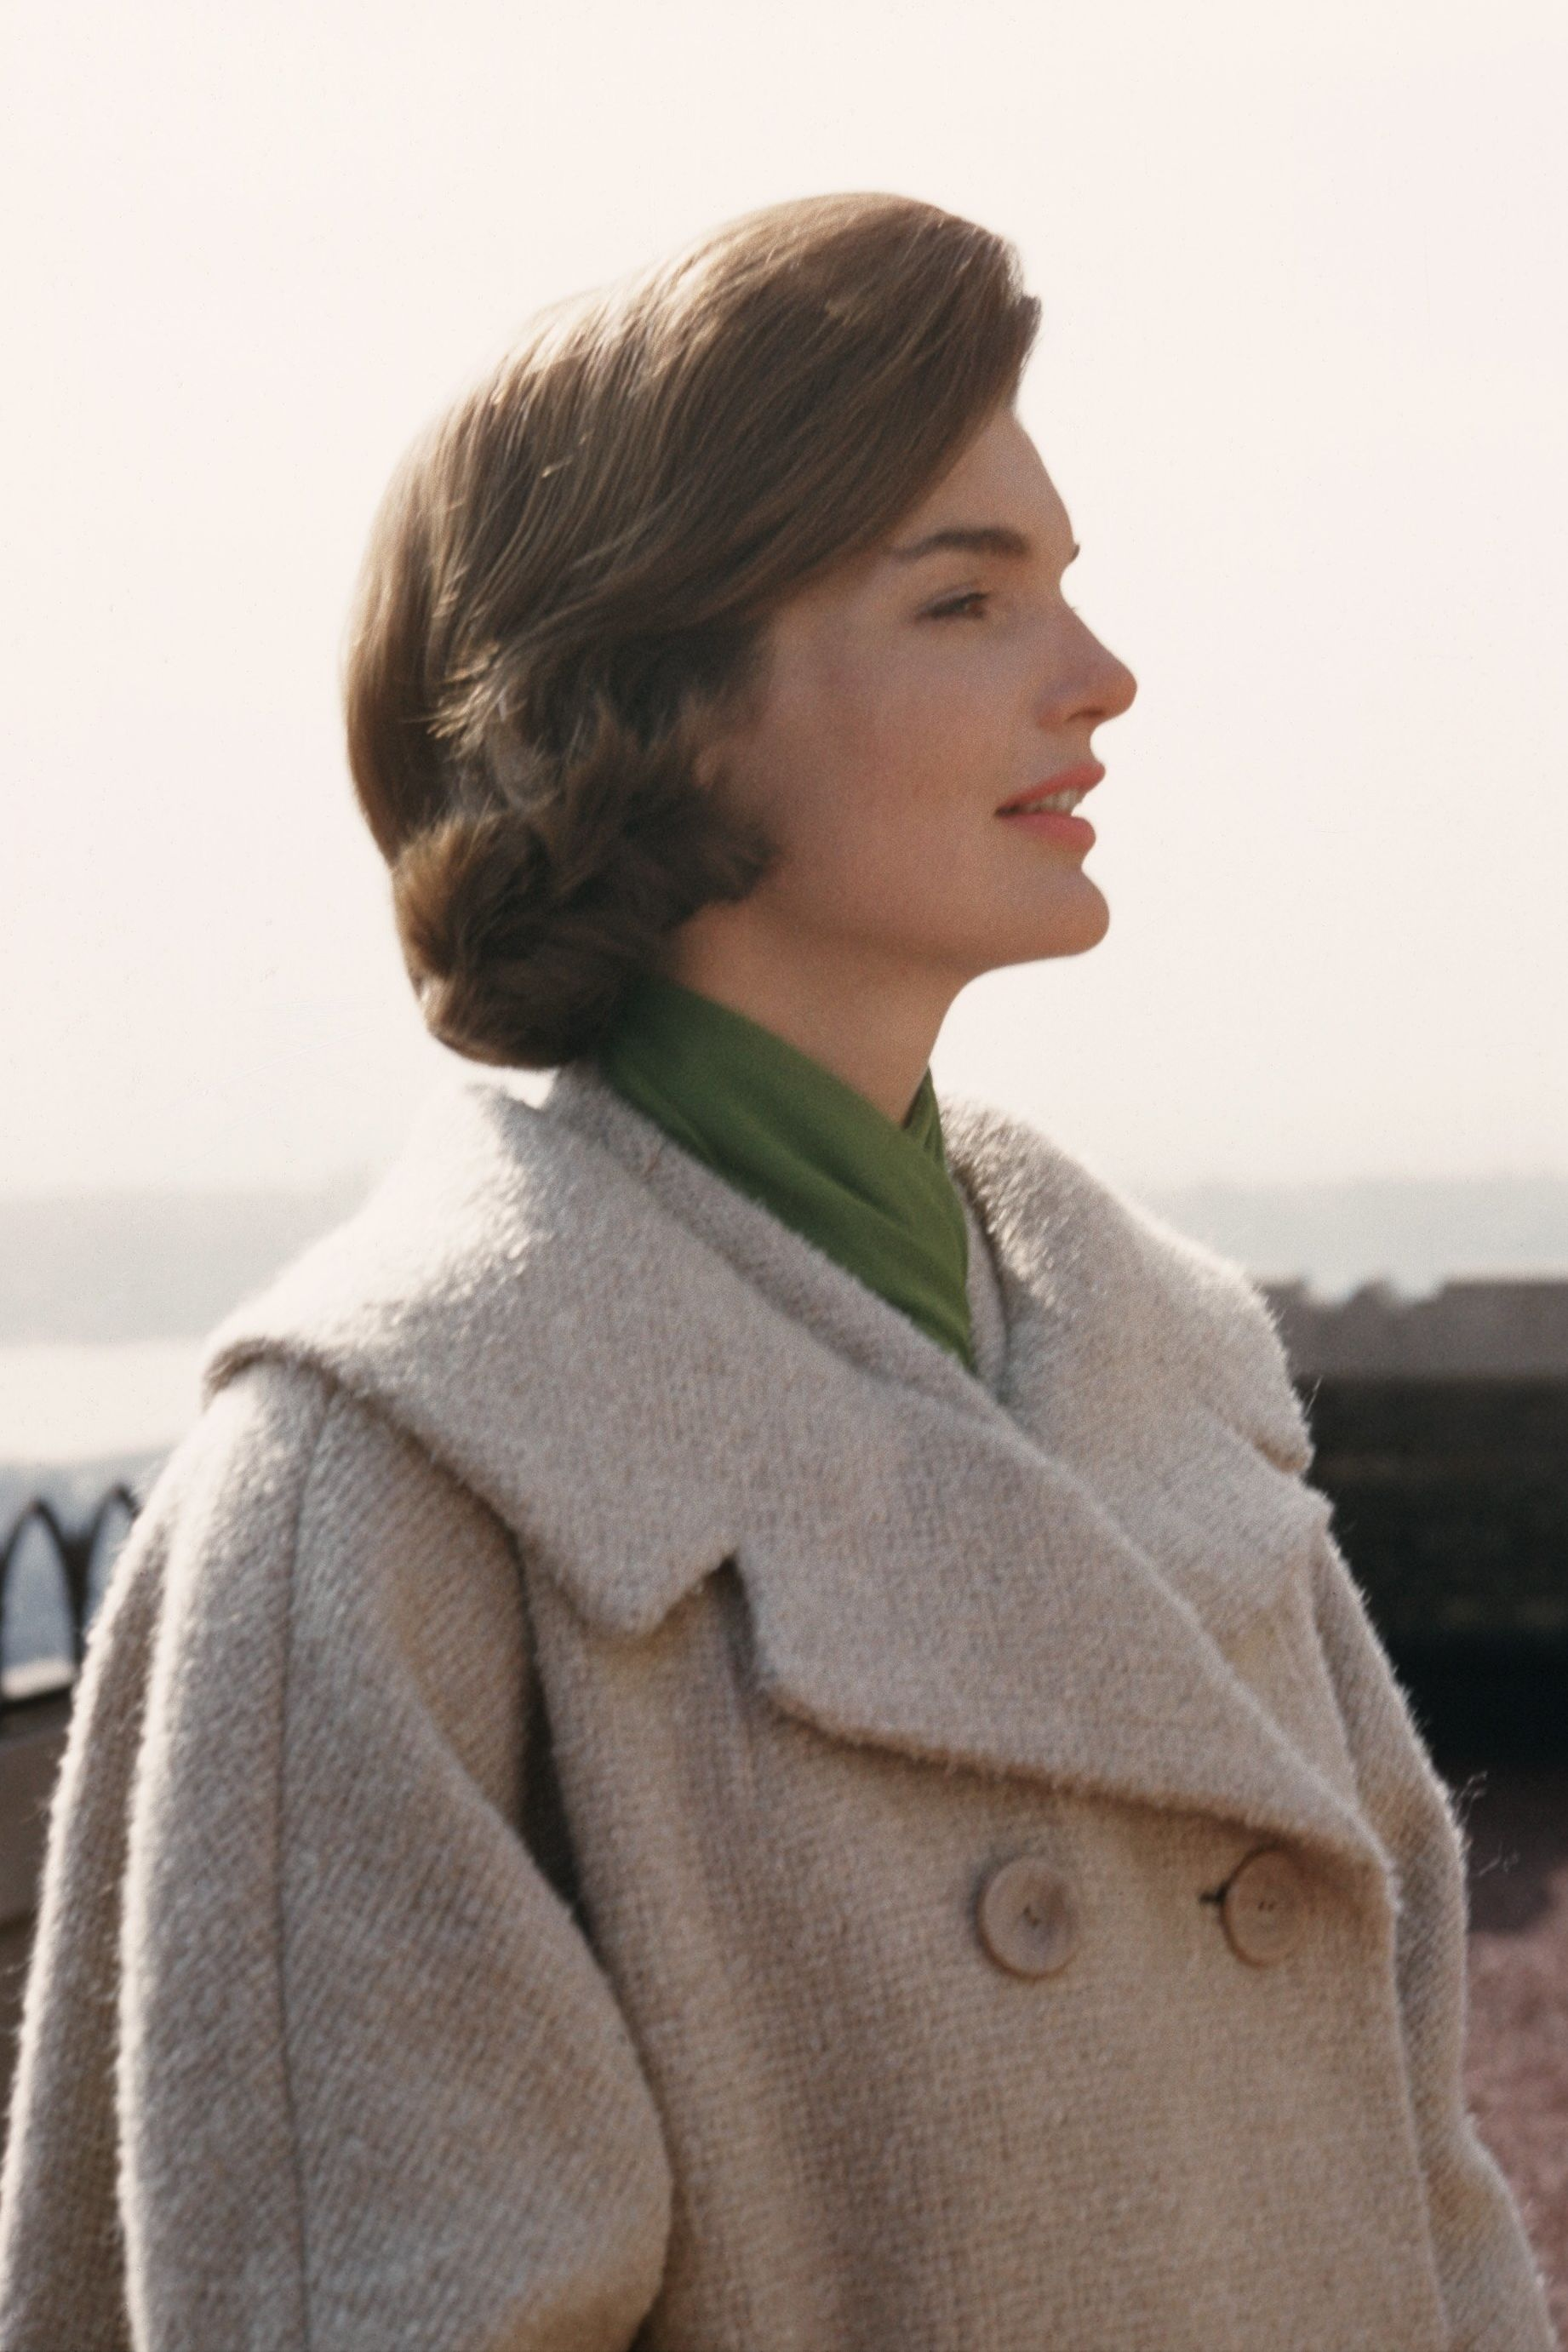 WATCH: 8 Beauty Lessons We Learned From Jackie Kennedy